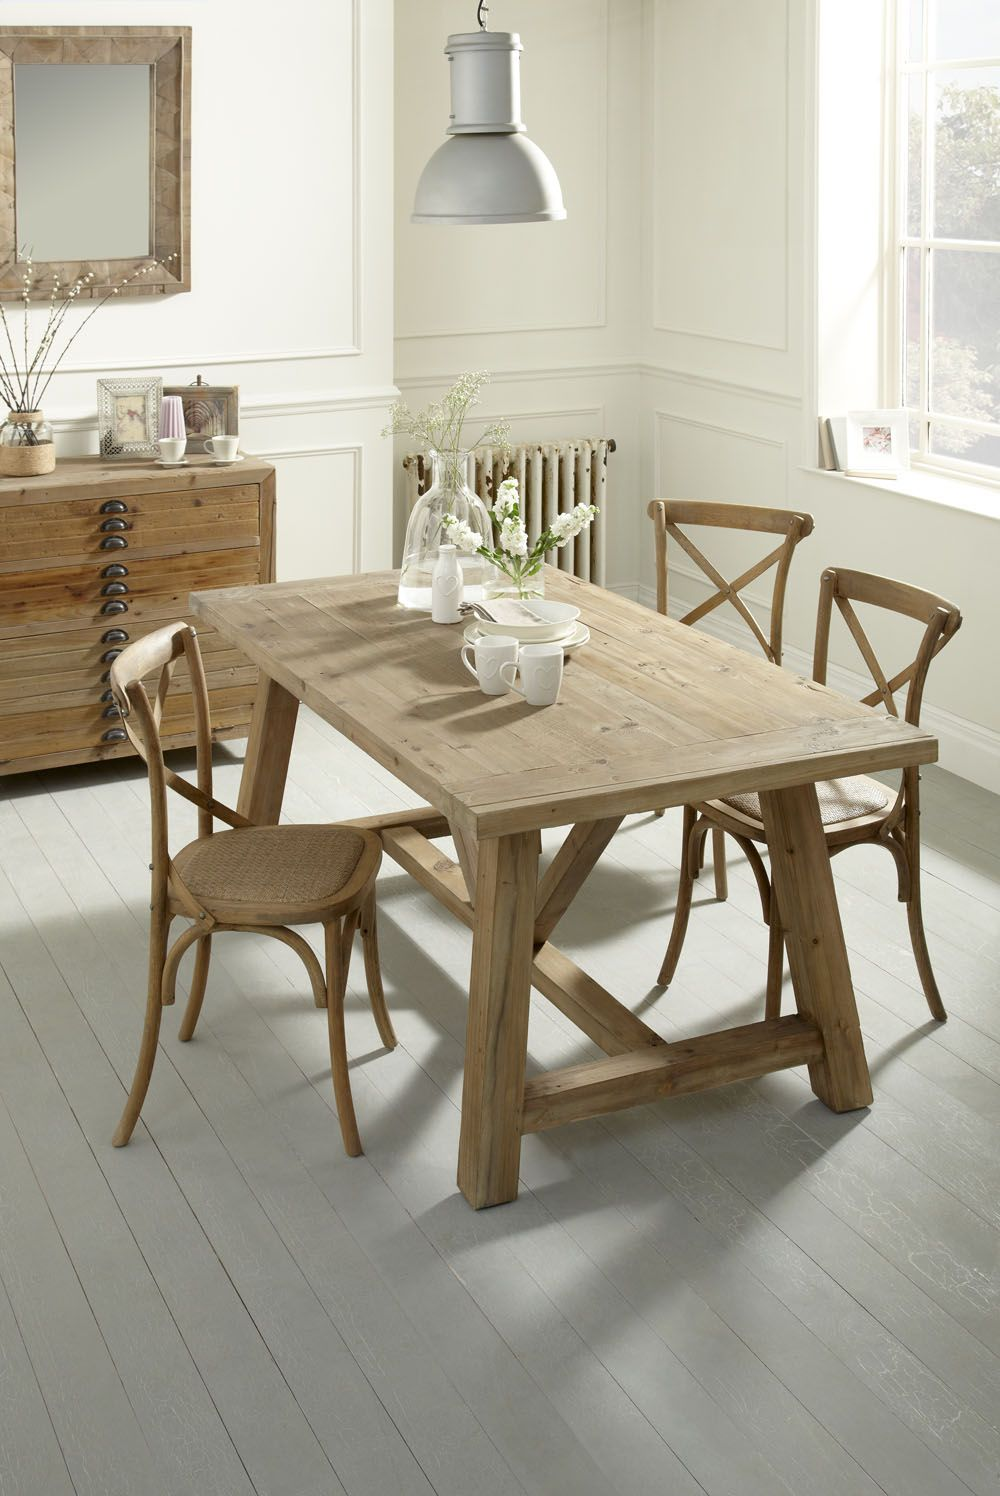 Reclaimed kitchen table  Samui Dining Table  Reclaimed fir dining table Loving every single